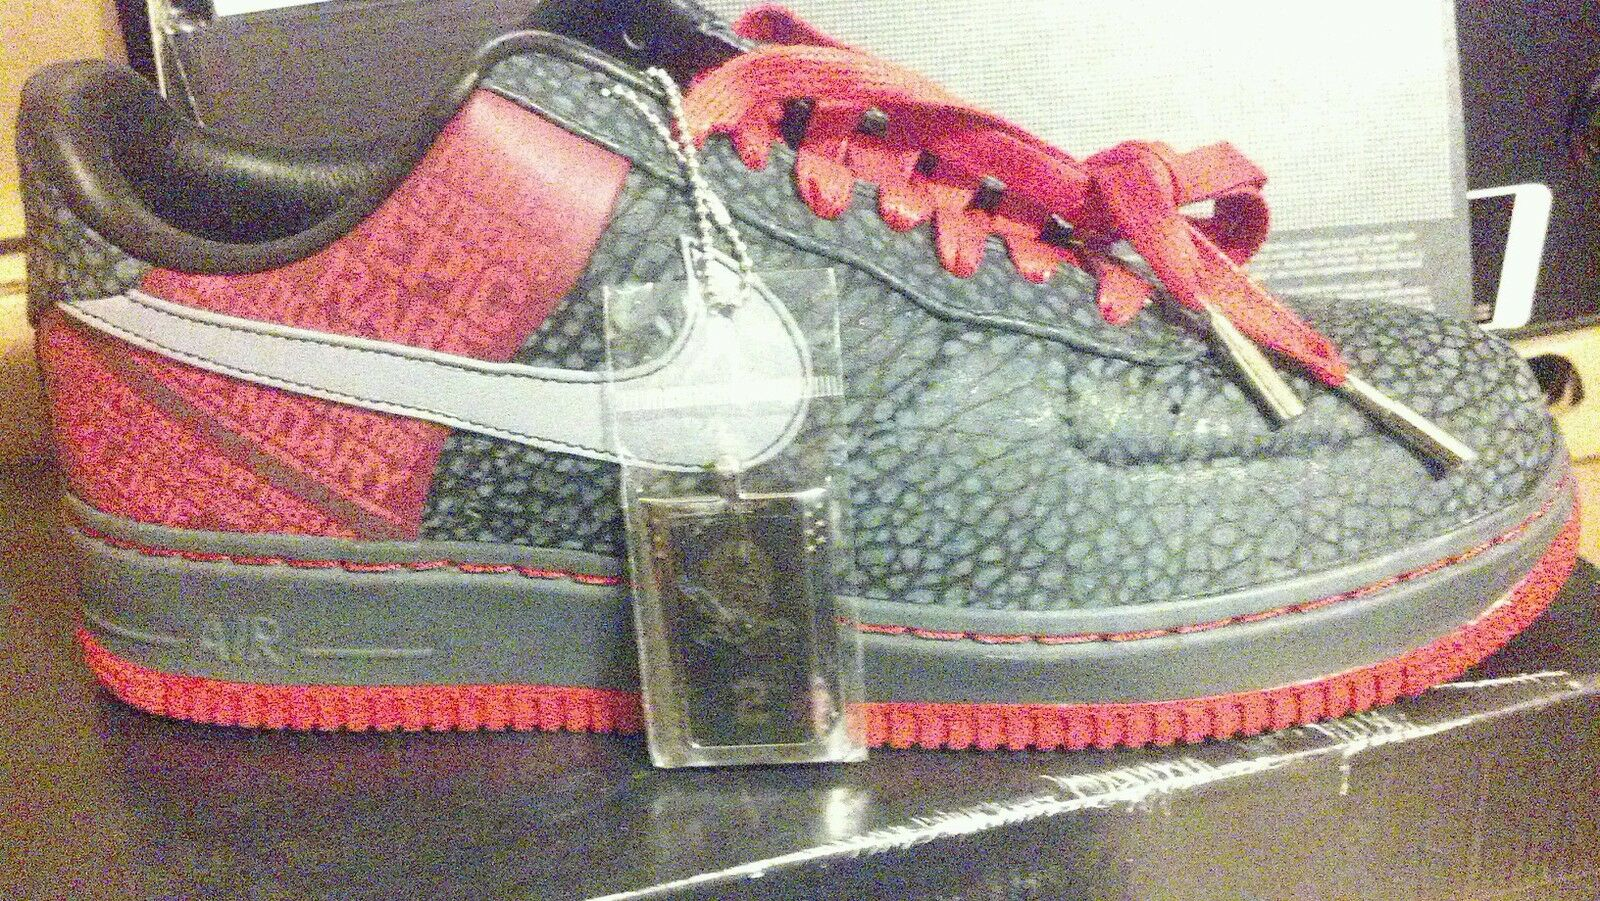 Nike Air Force 1 Supreme/ Moses Malone/ Elephant Print 3M Reflector/Sz. 11,13